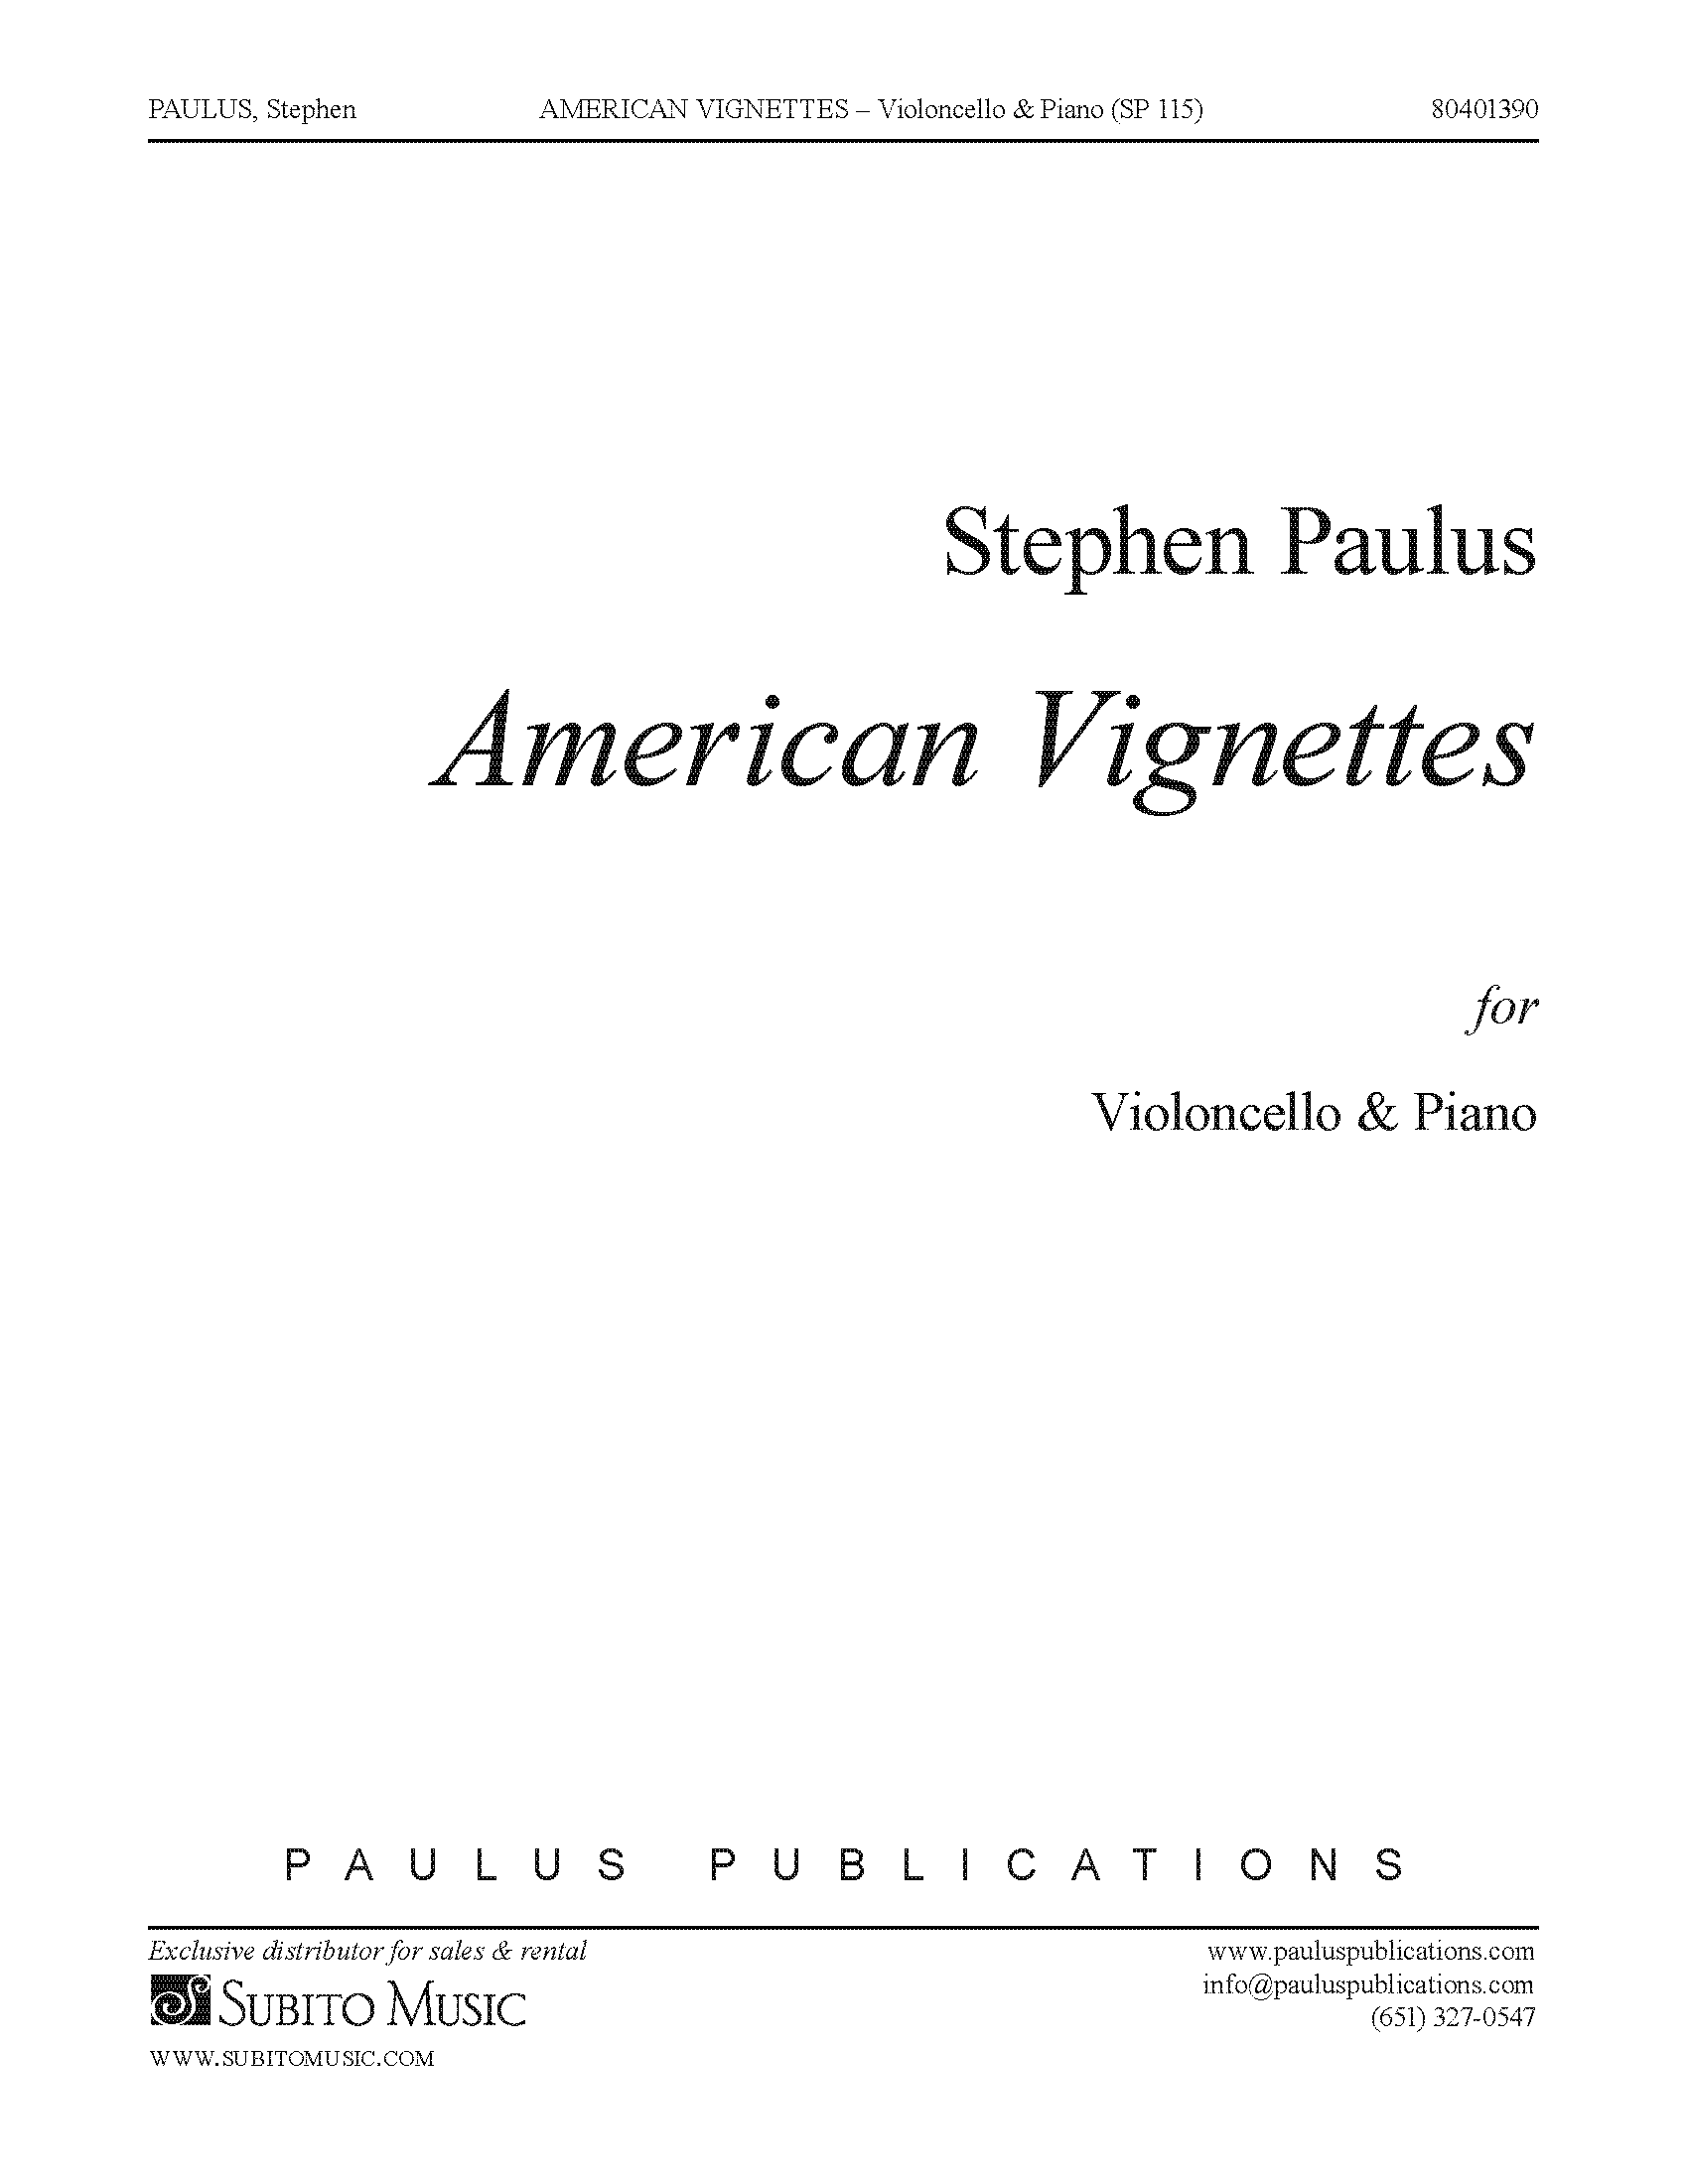 American Vignettes for Violoncello & Piano